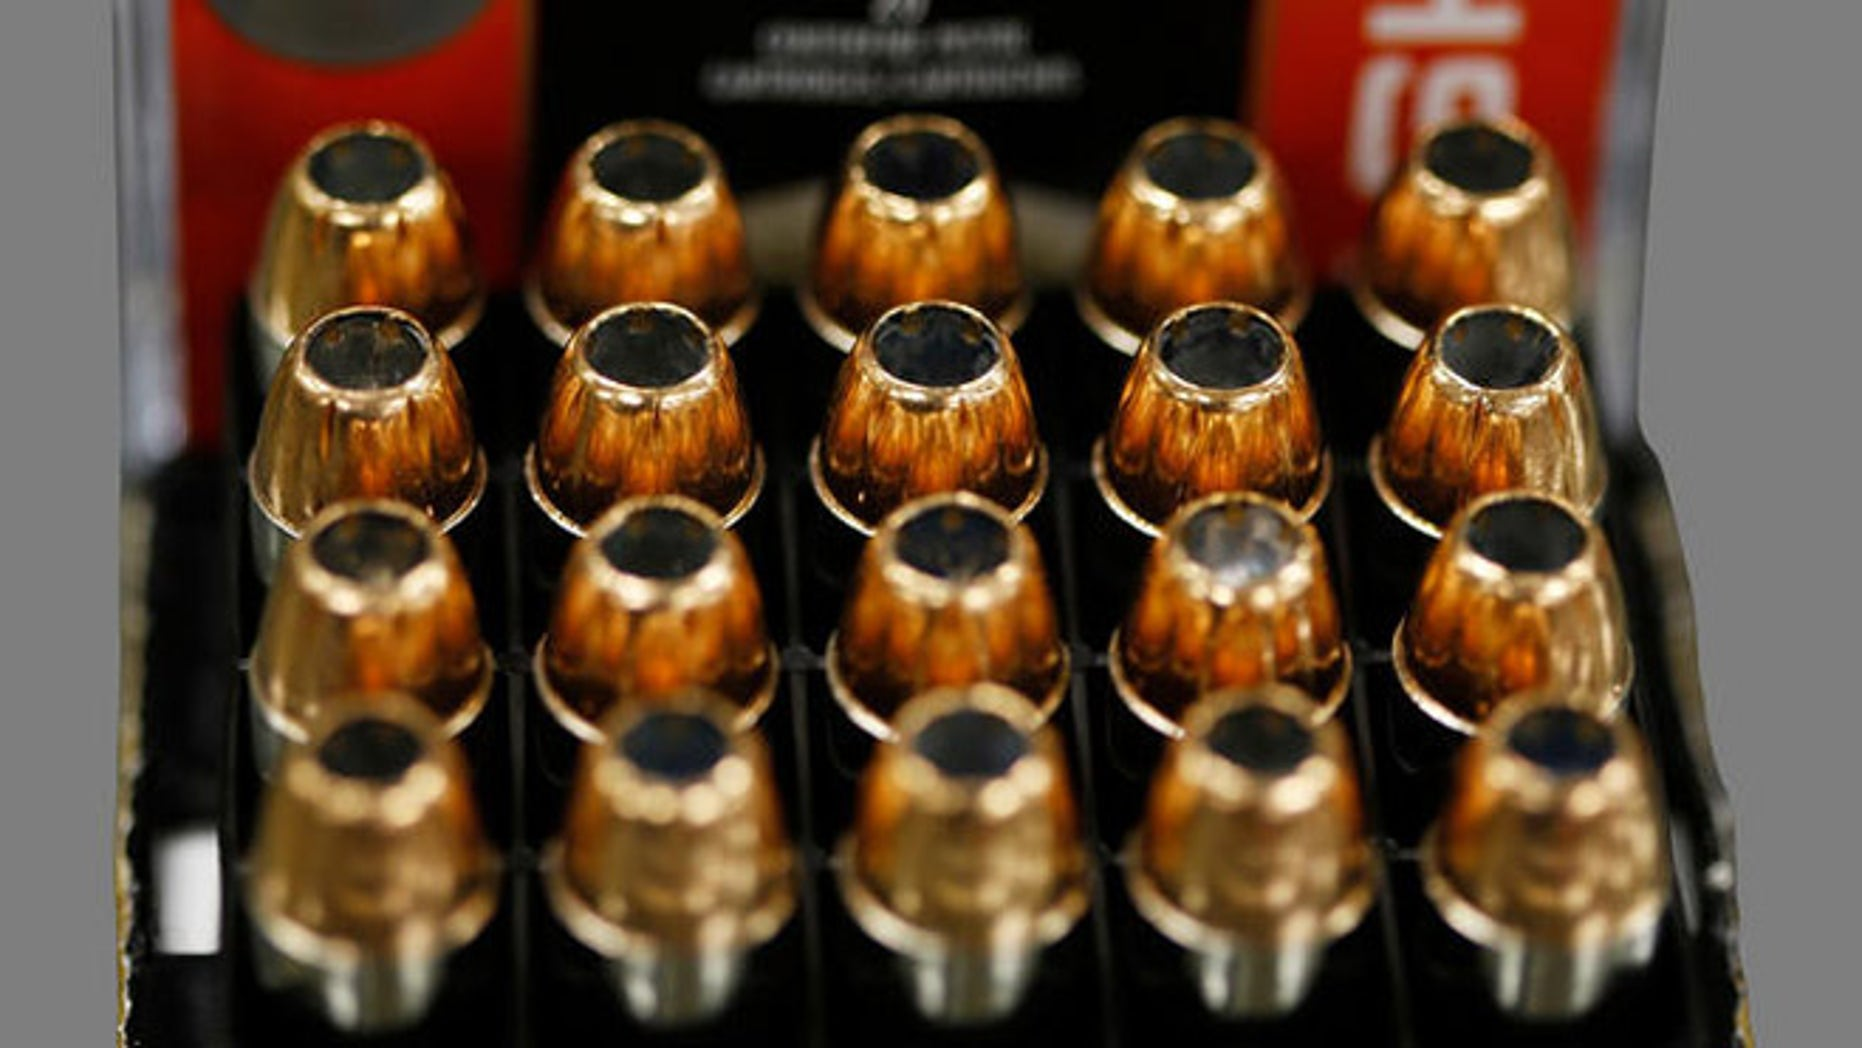 Shown here are Federal Premium hollow point bullets.